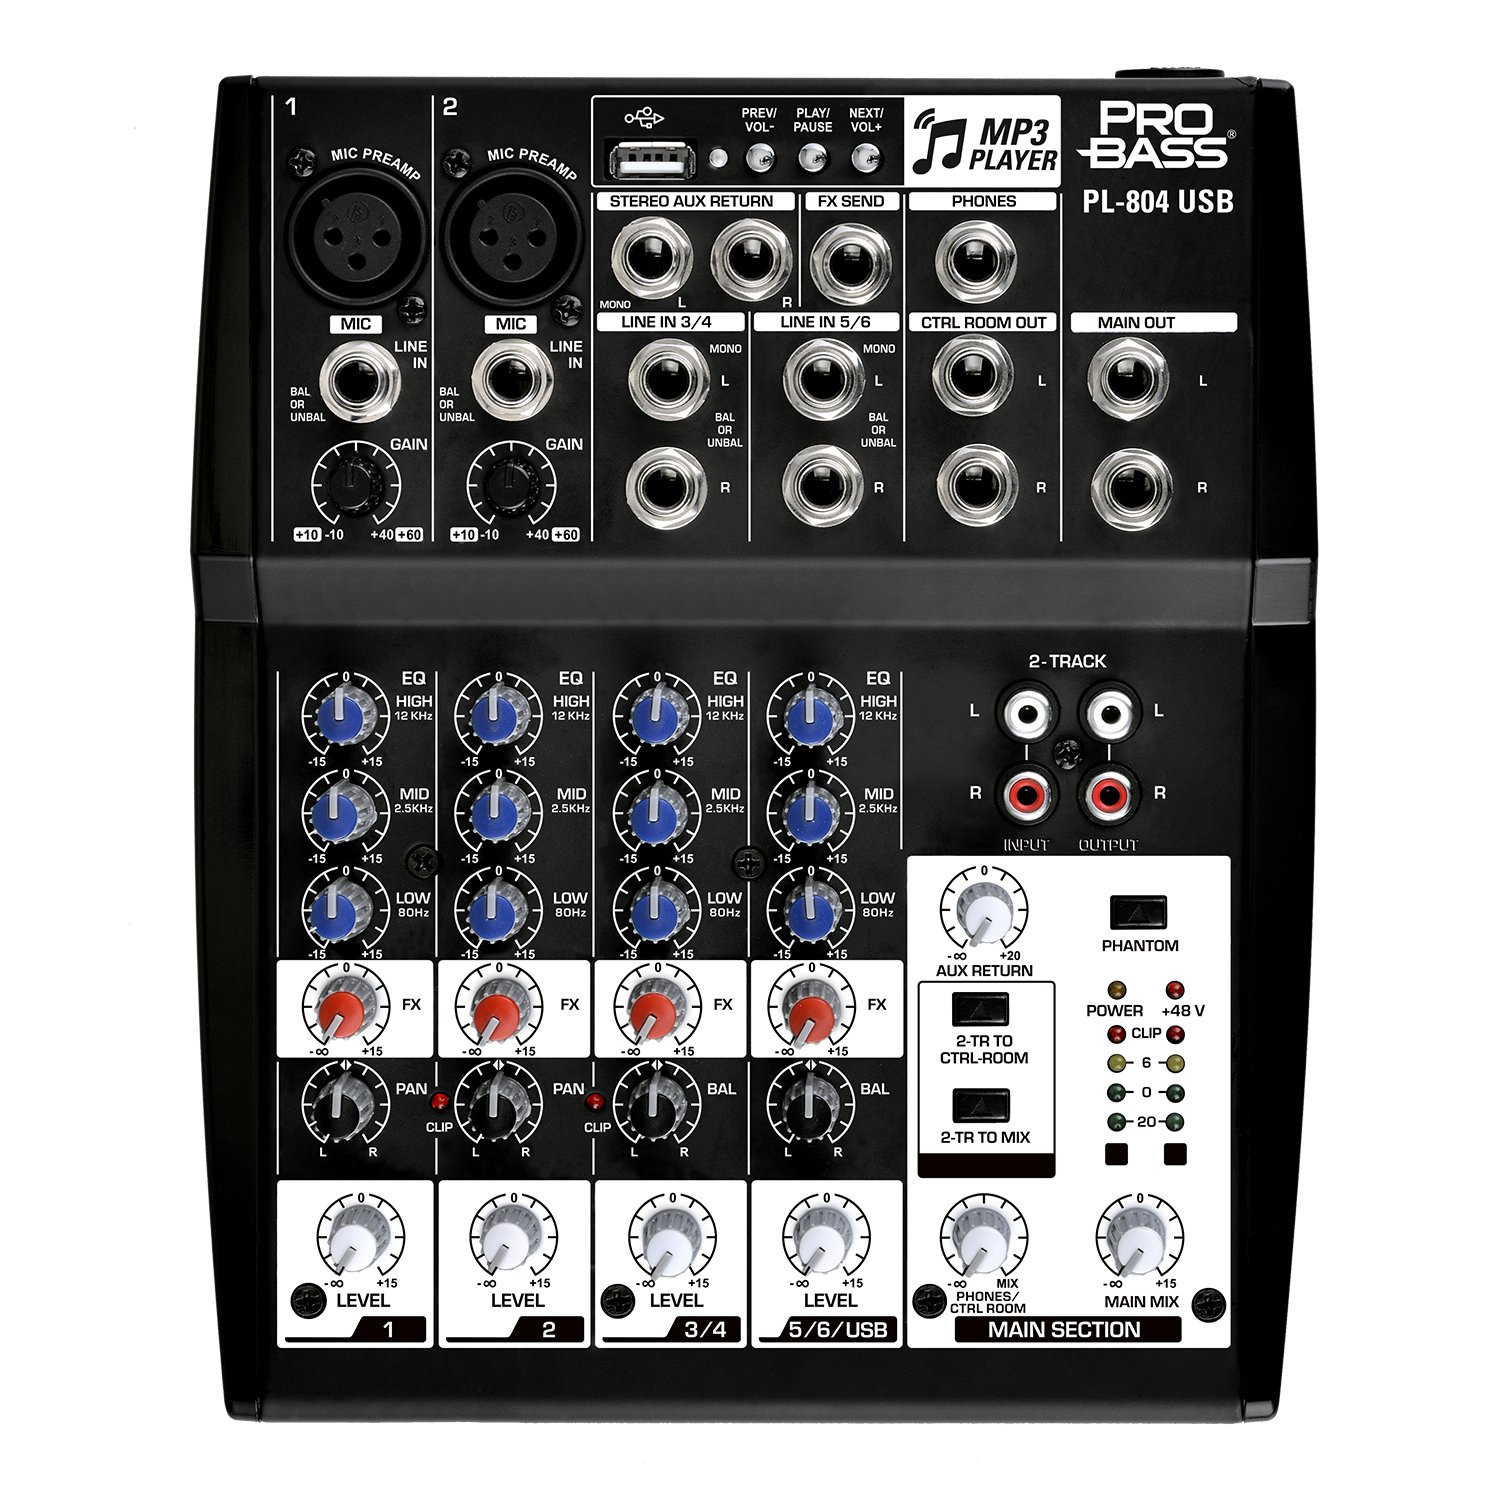 Pro Bass PL-804 USB Professional Audio Mixing Console 8 Channels, 3 Bands EQ +48 Phantom Power MP3 Player